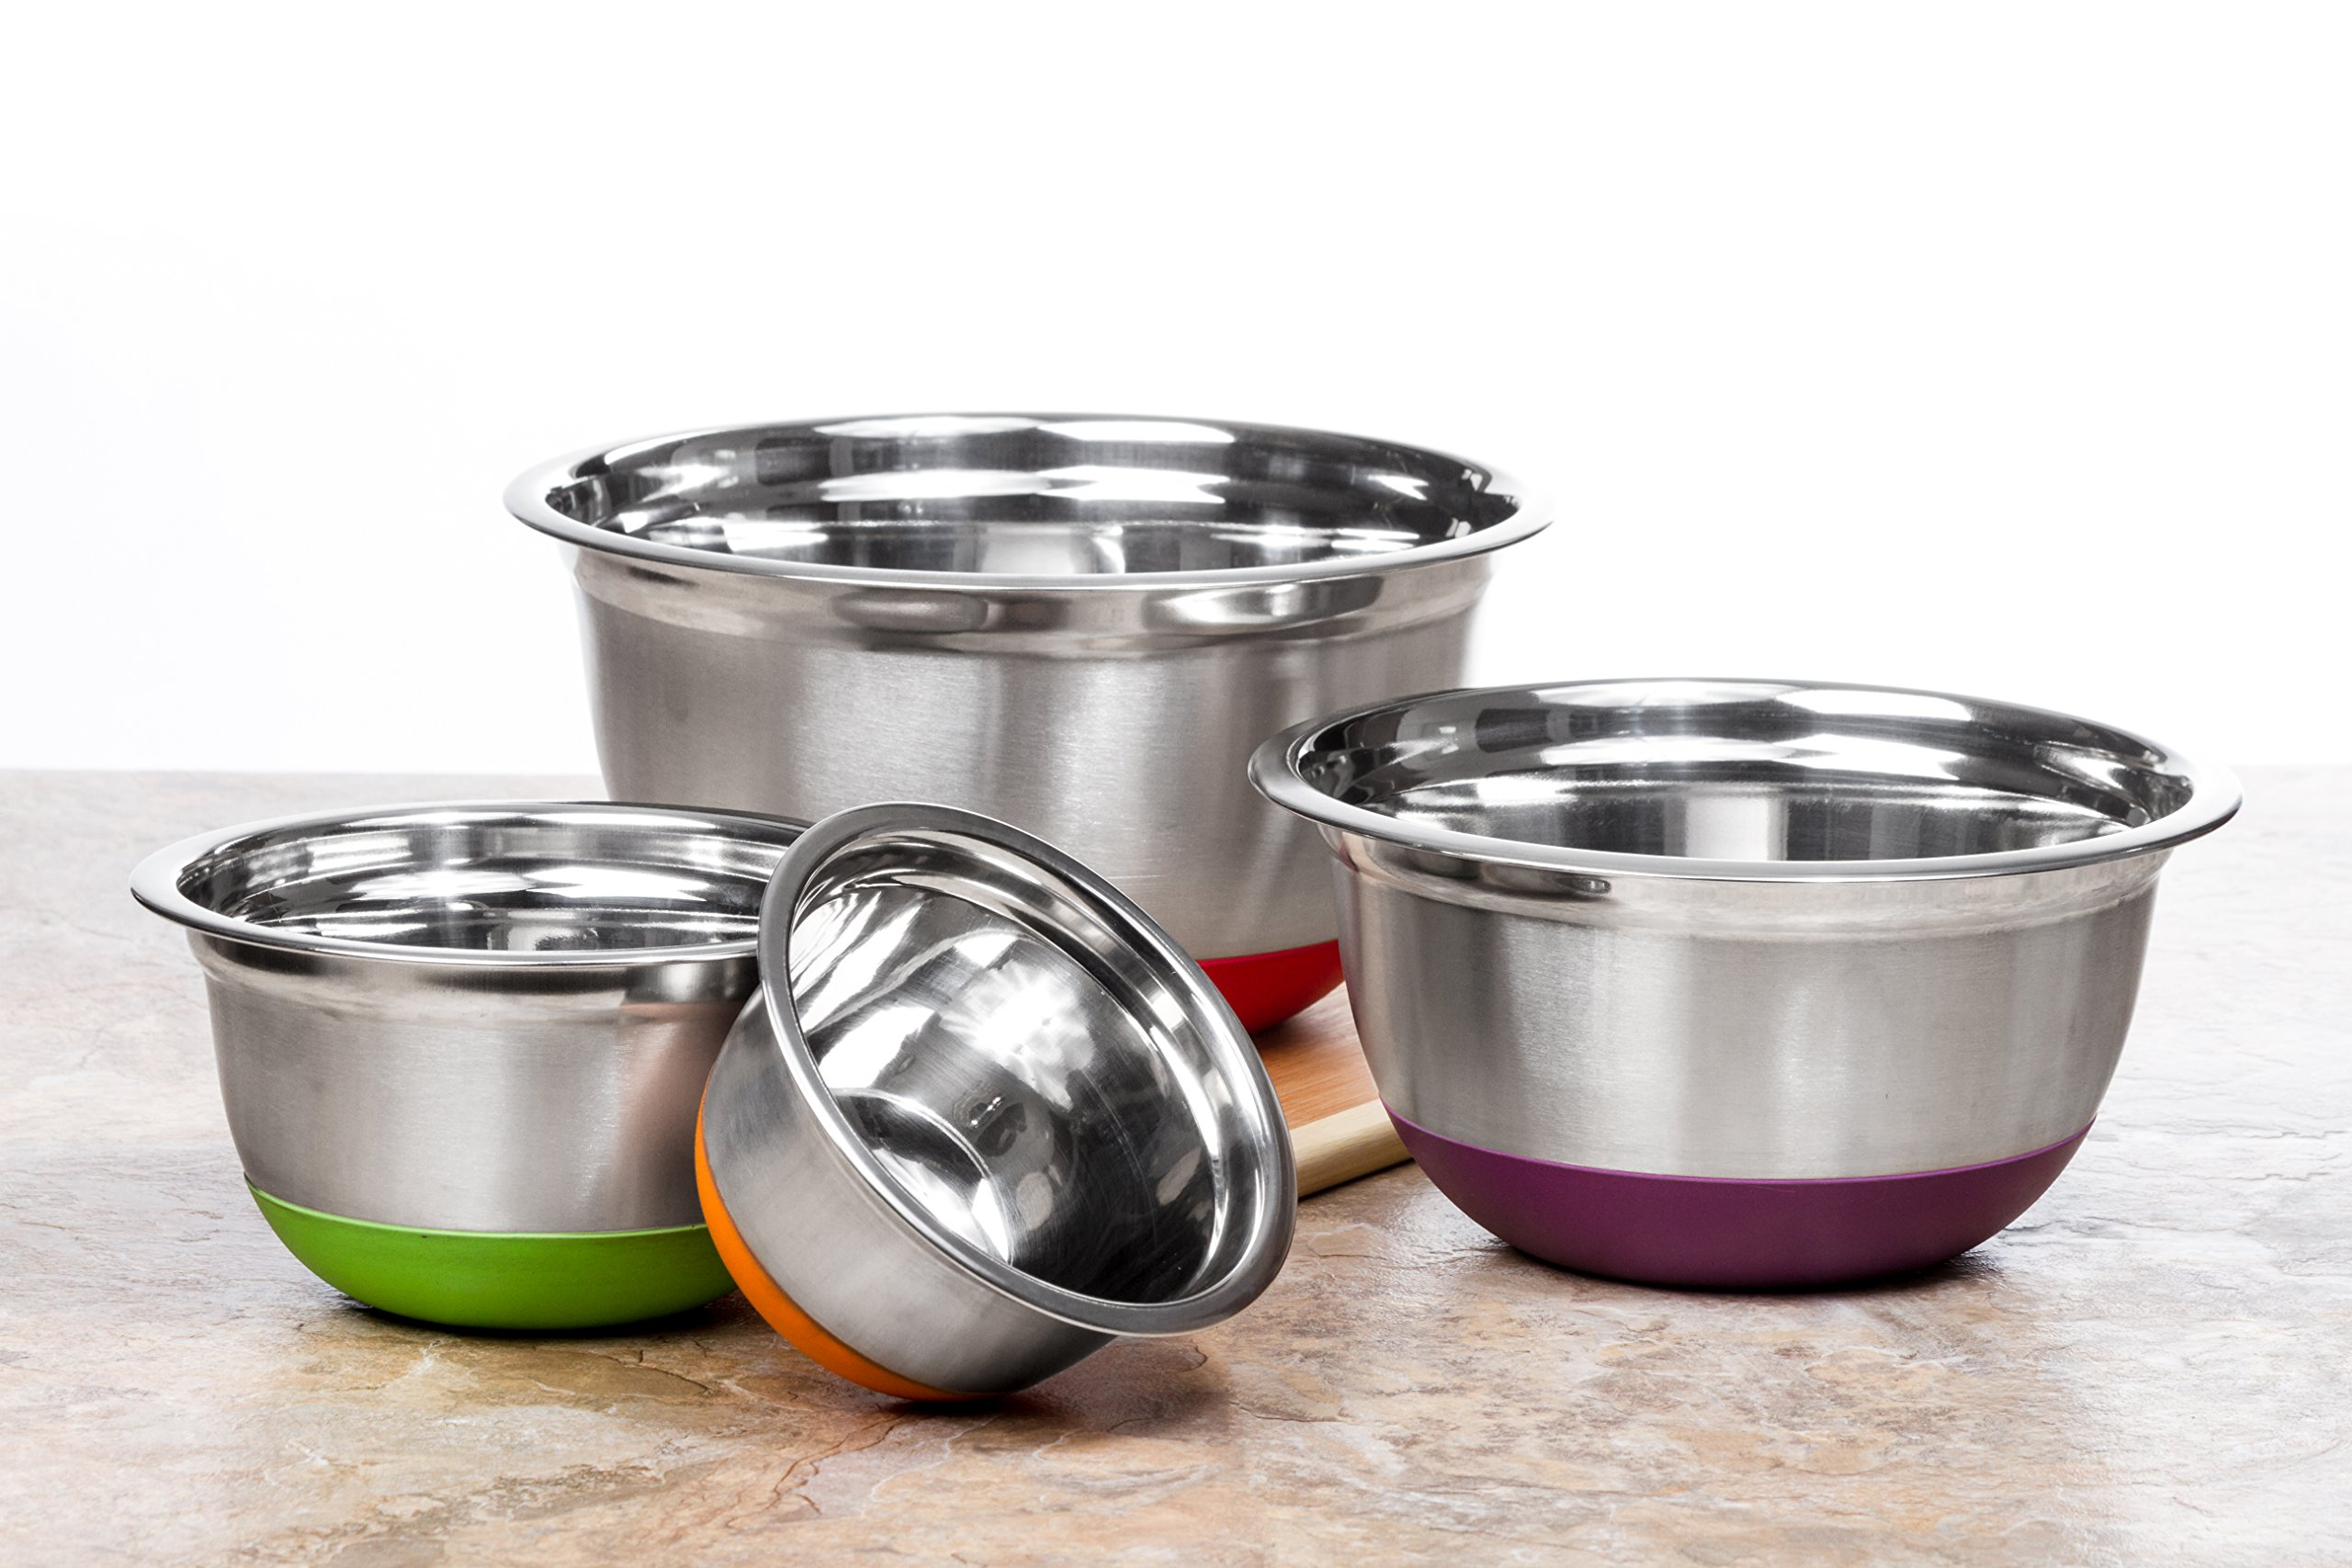 4 Pc Chef Quality Stainless Steel Mixing Bowls w/Colorful Silicone Bottoms - Prep Bowls or Mixing Bowl Set w/Non Skid Base